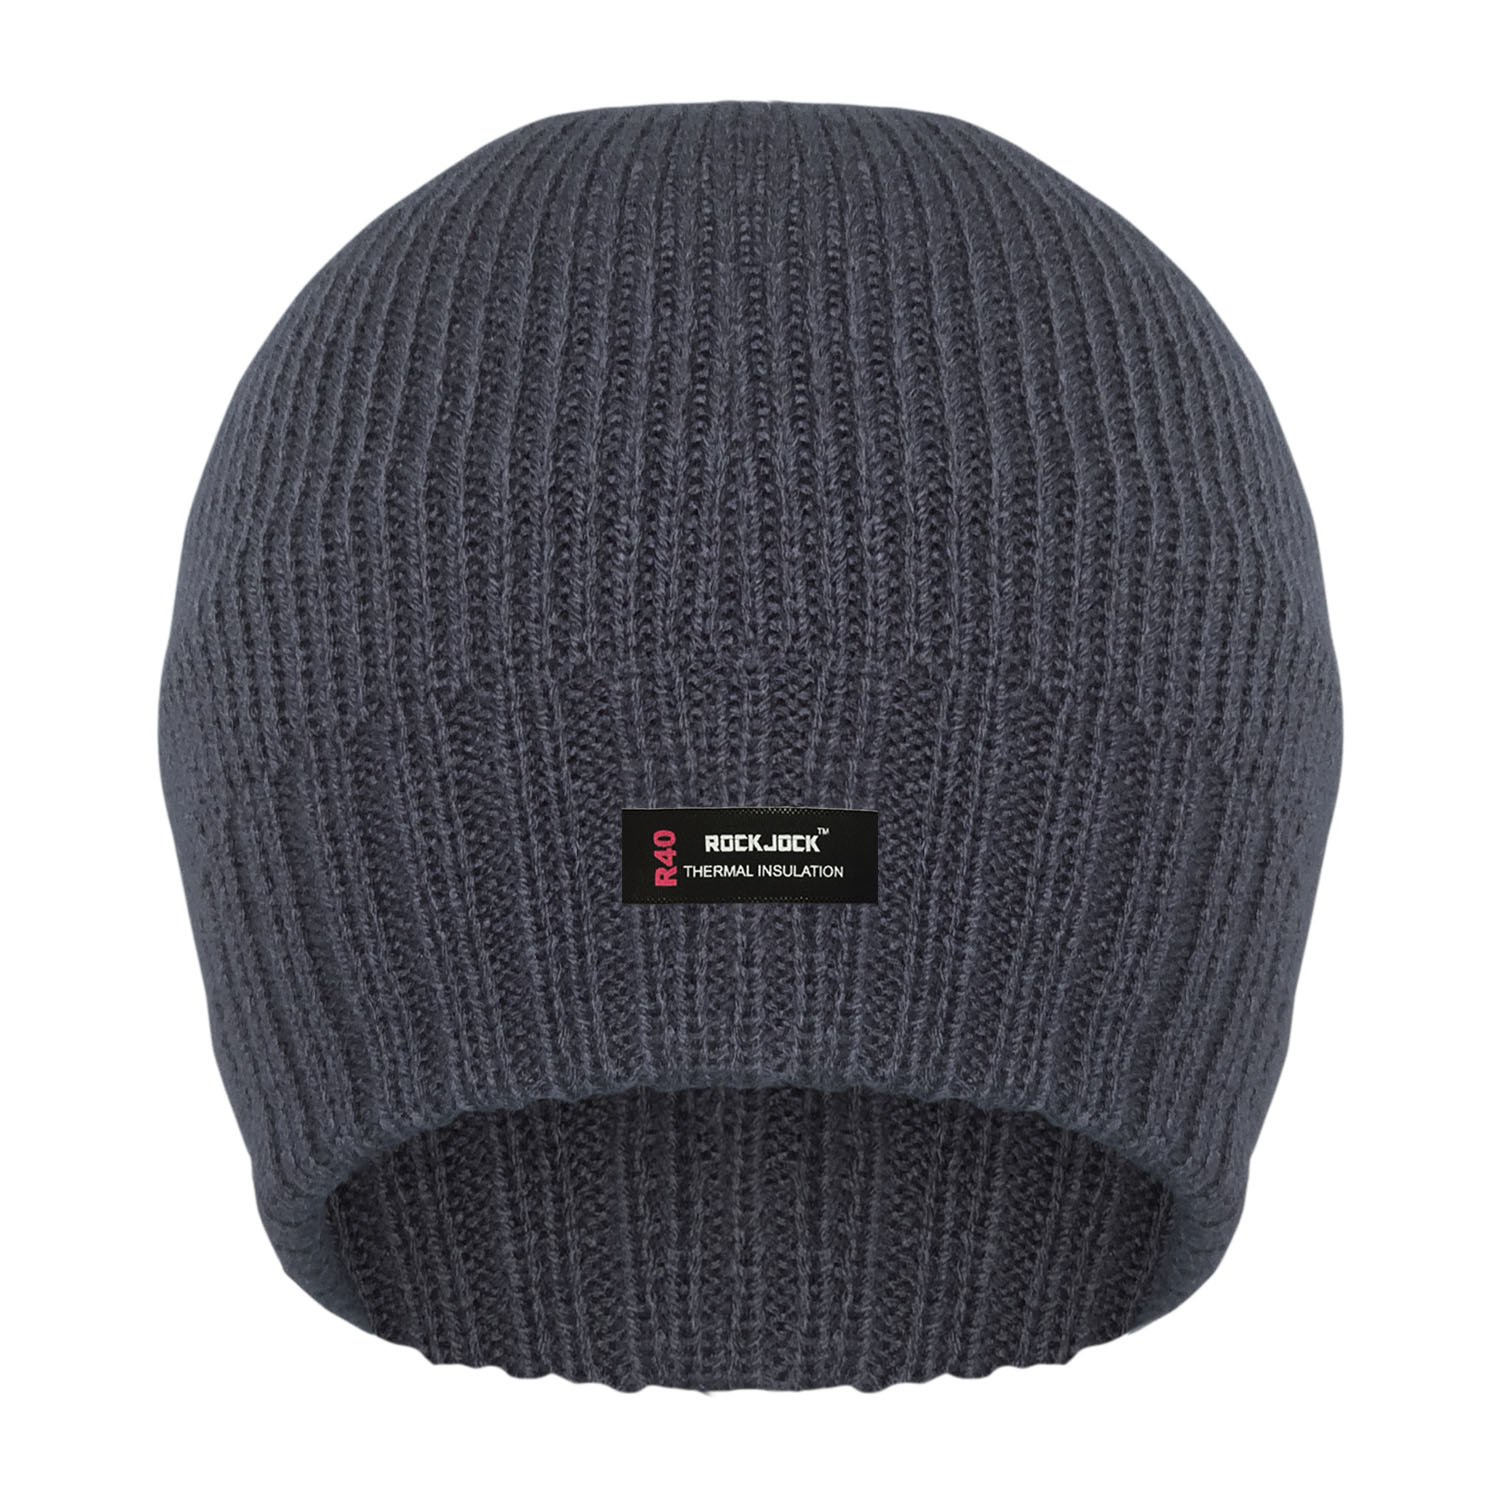 RockJock Ribbed Beanie HAT with R40 Advanced Thermal Insulation for Men